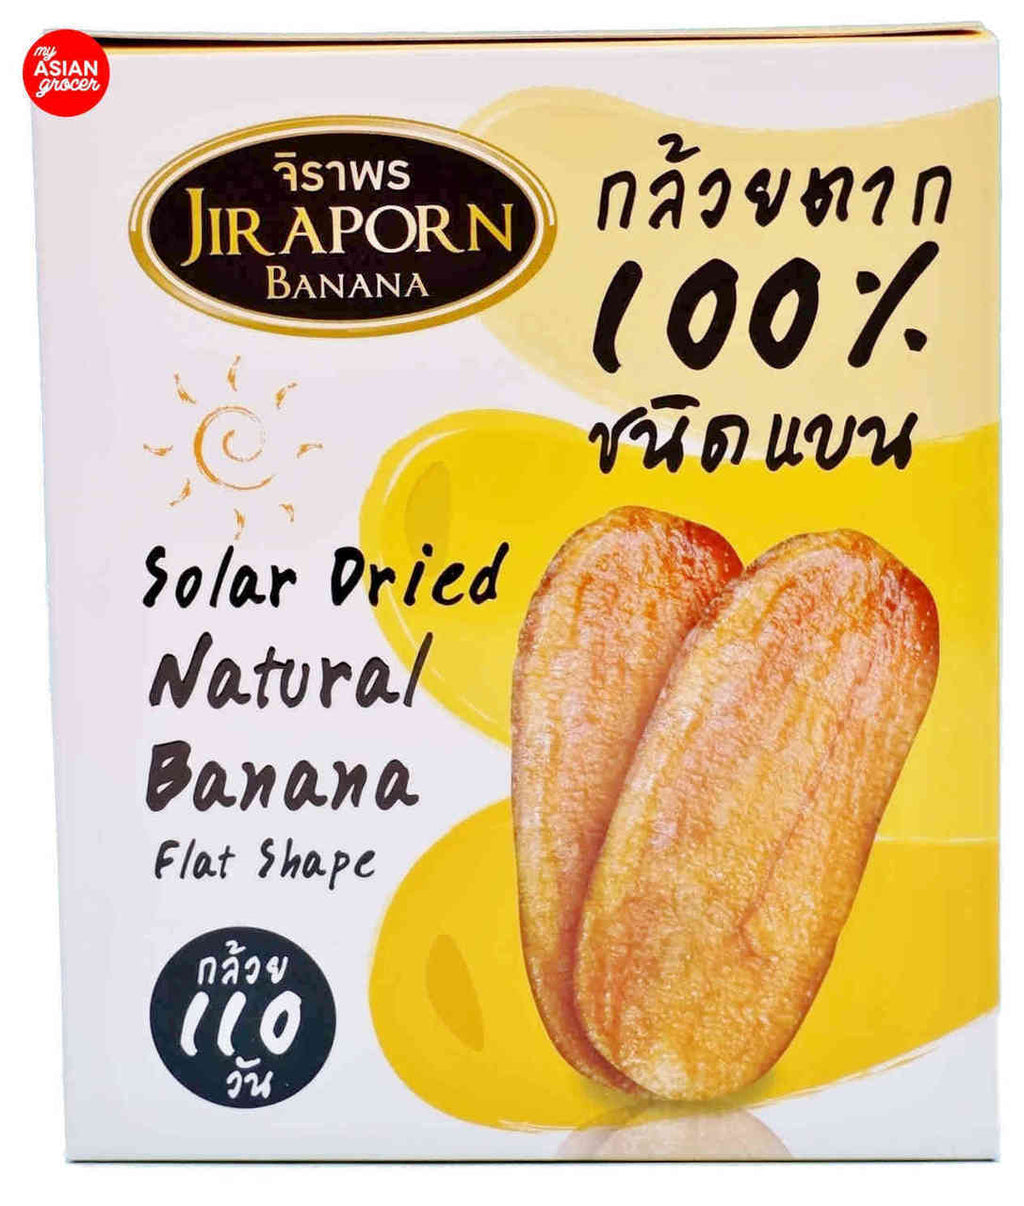 Jir Aporn - Solar Dried Natural Banana